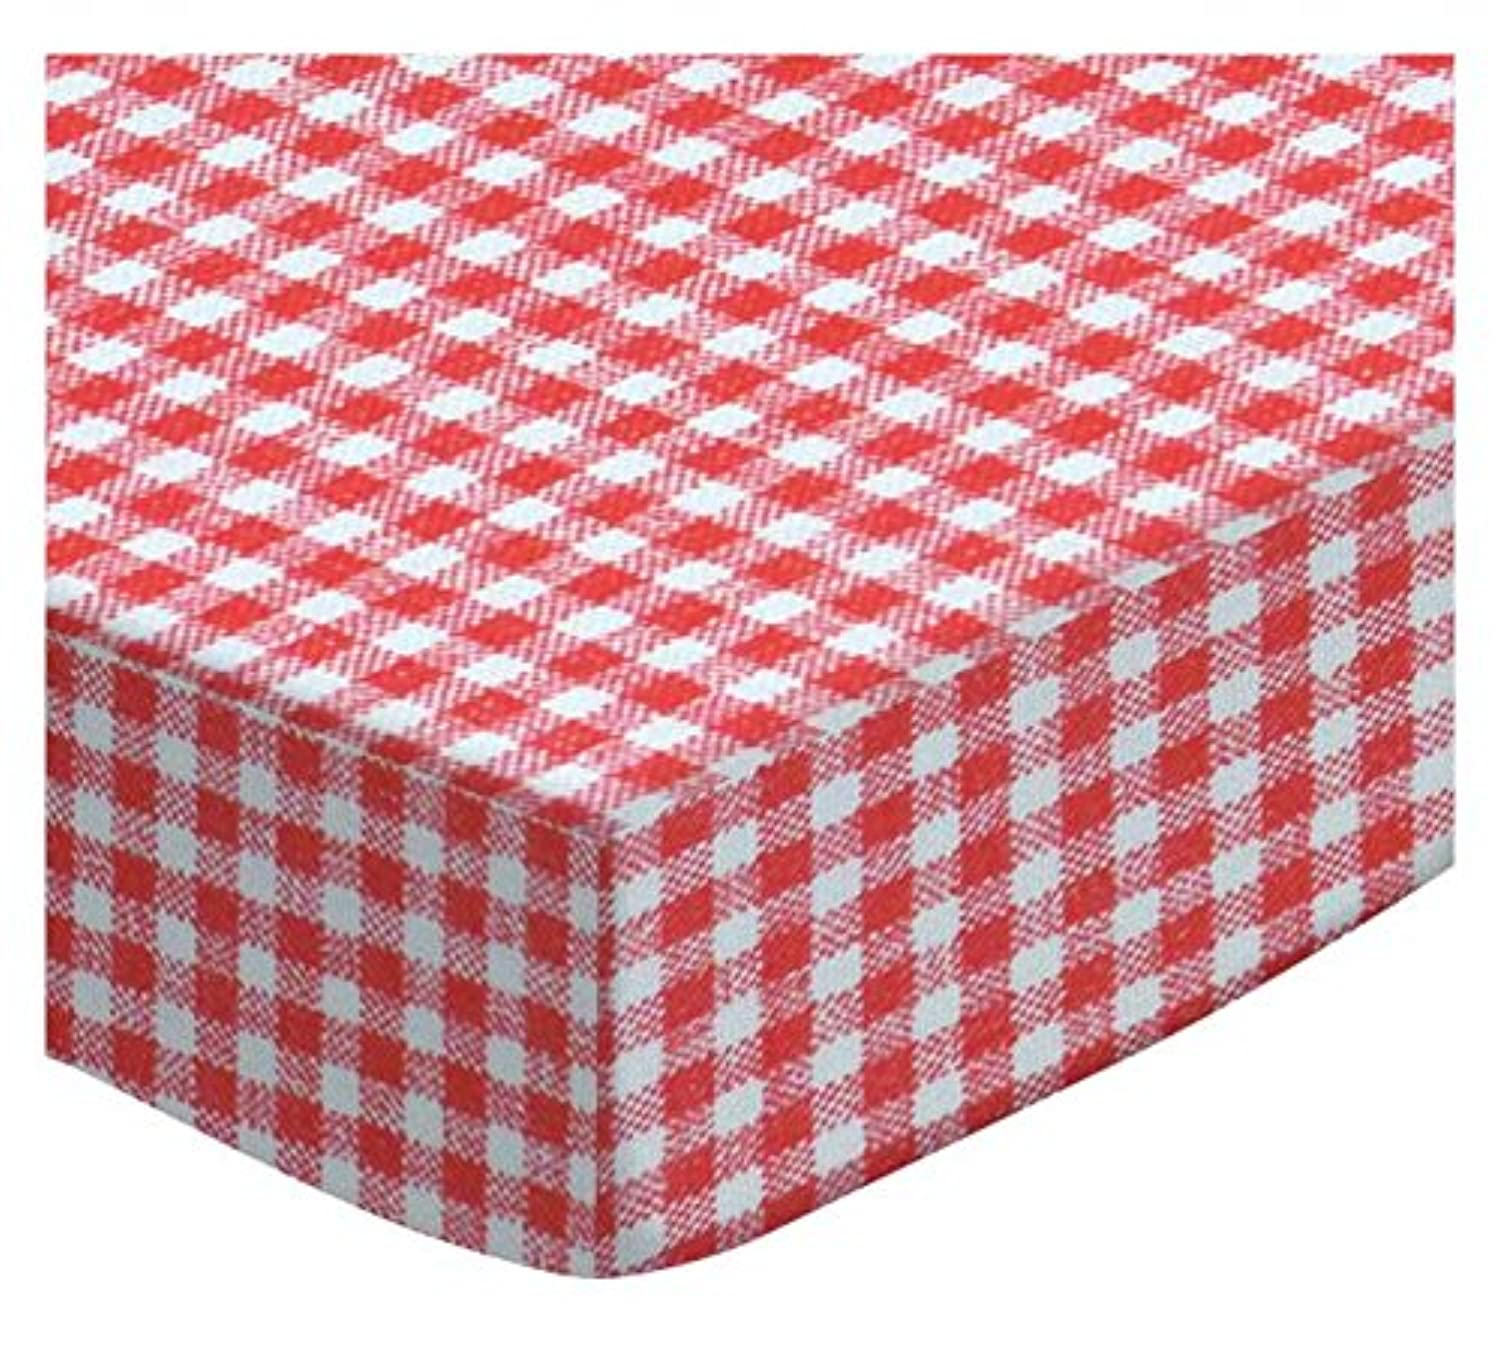 SheetWorld Fitted Square Playard Sheet 37.5 x 37.5 (Fits Joovy) - Primary Red Gingham Woven - Made In USA by sheetworld